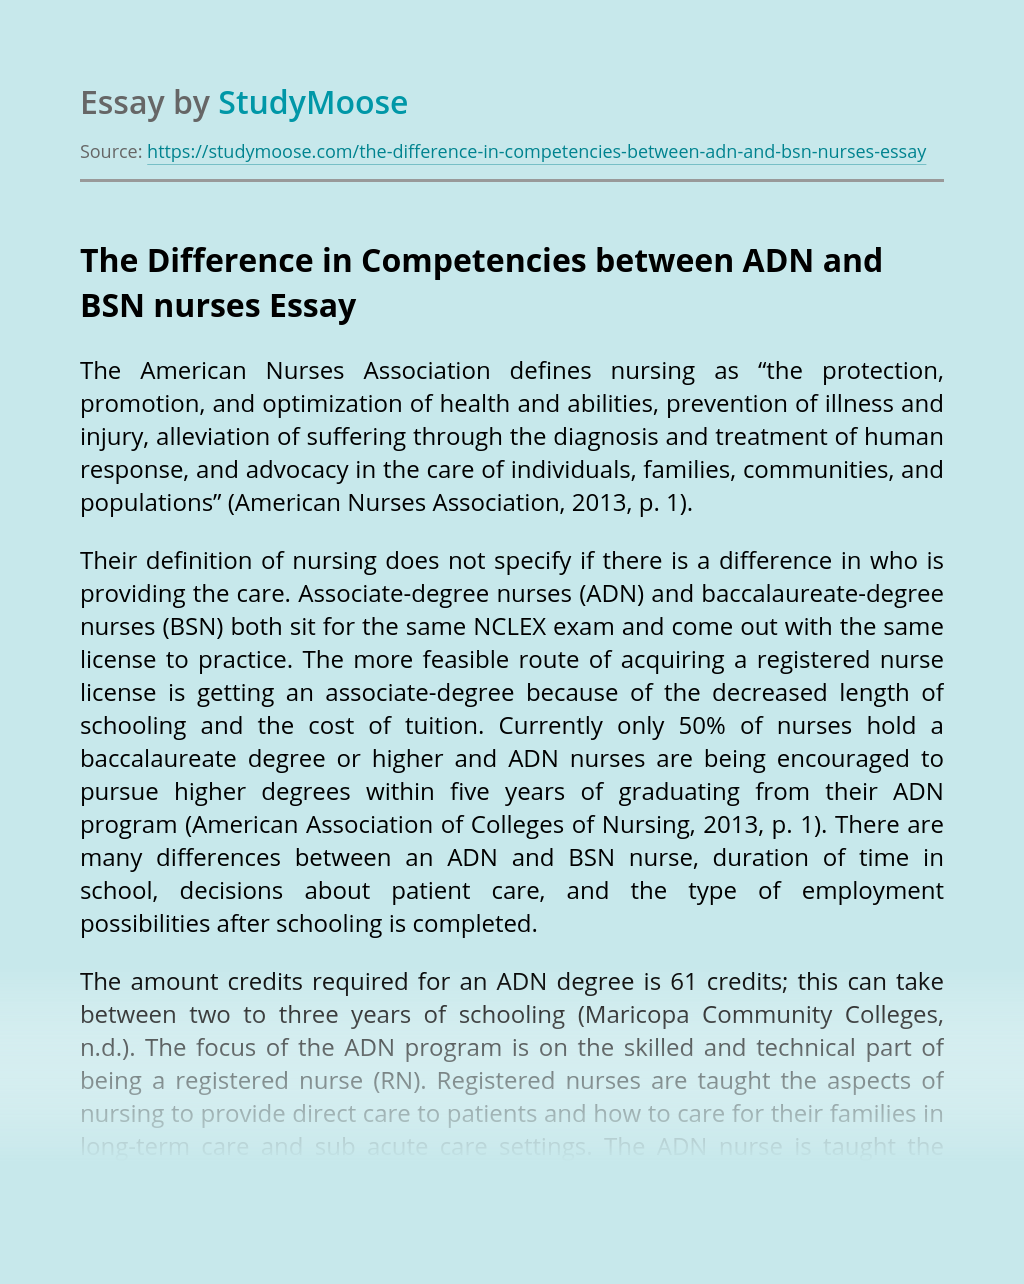 The Difference in Competencies between ADN and BSN nurses